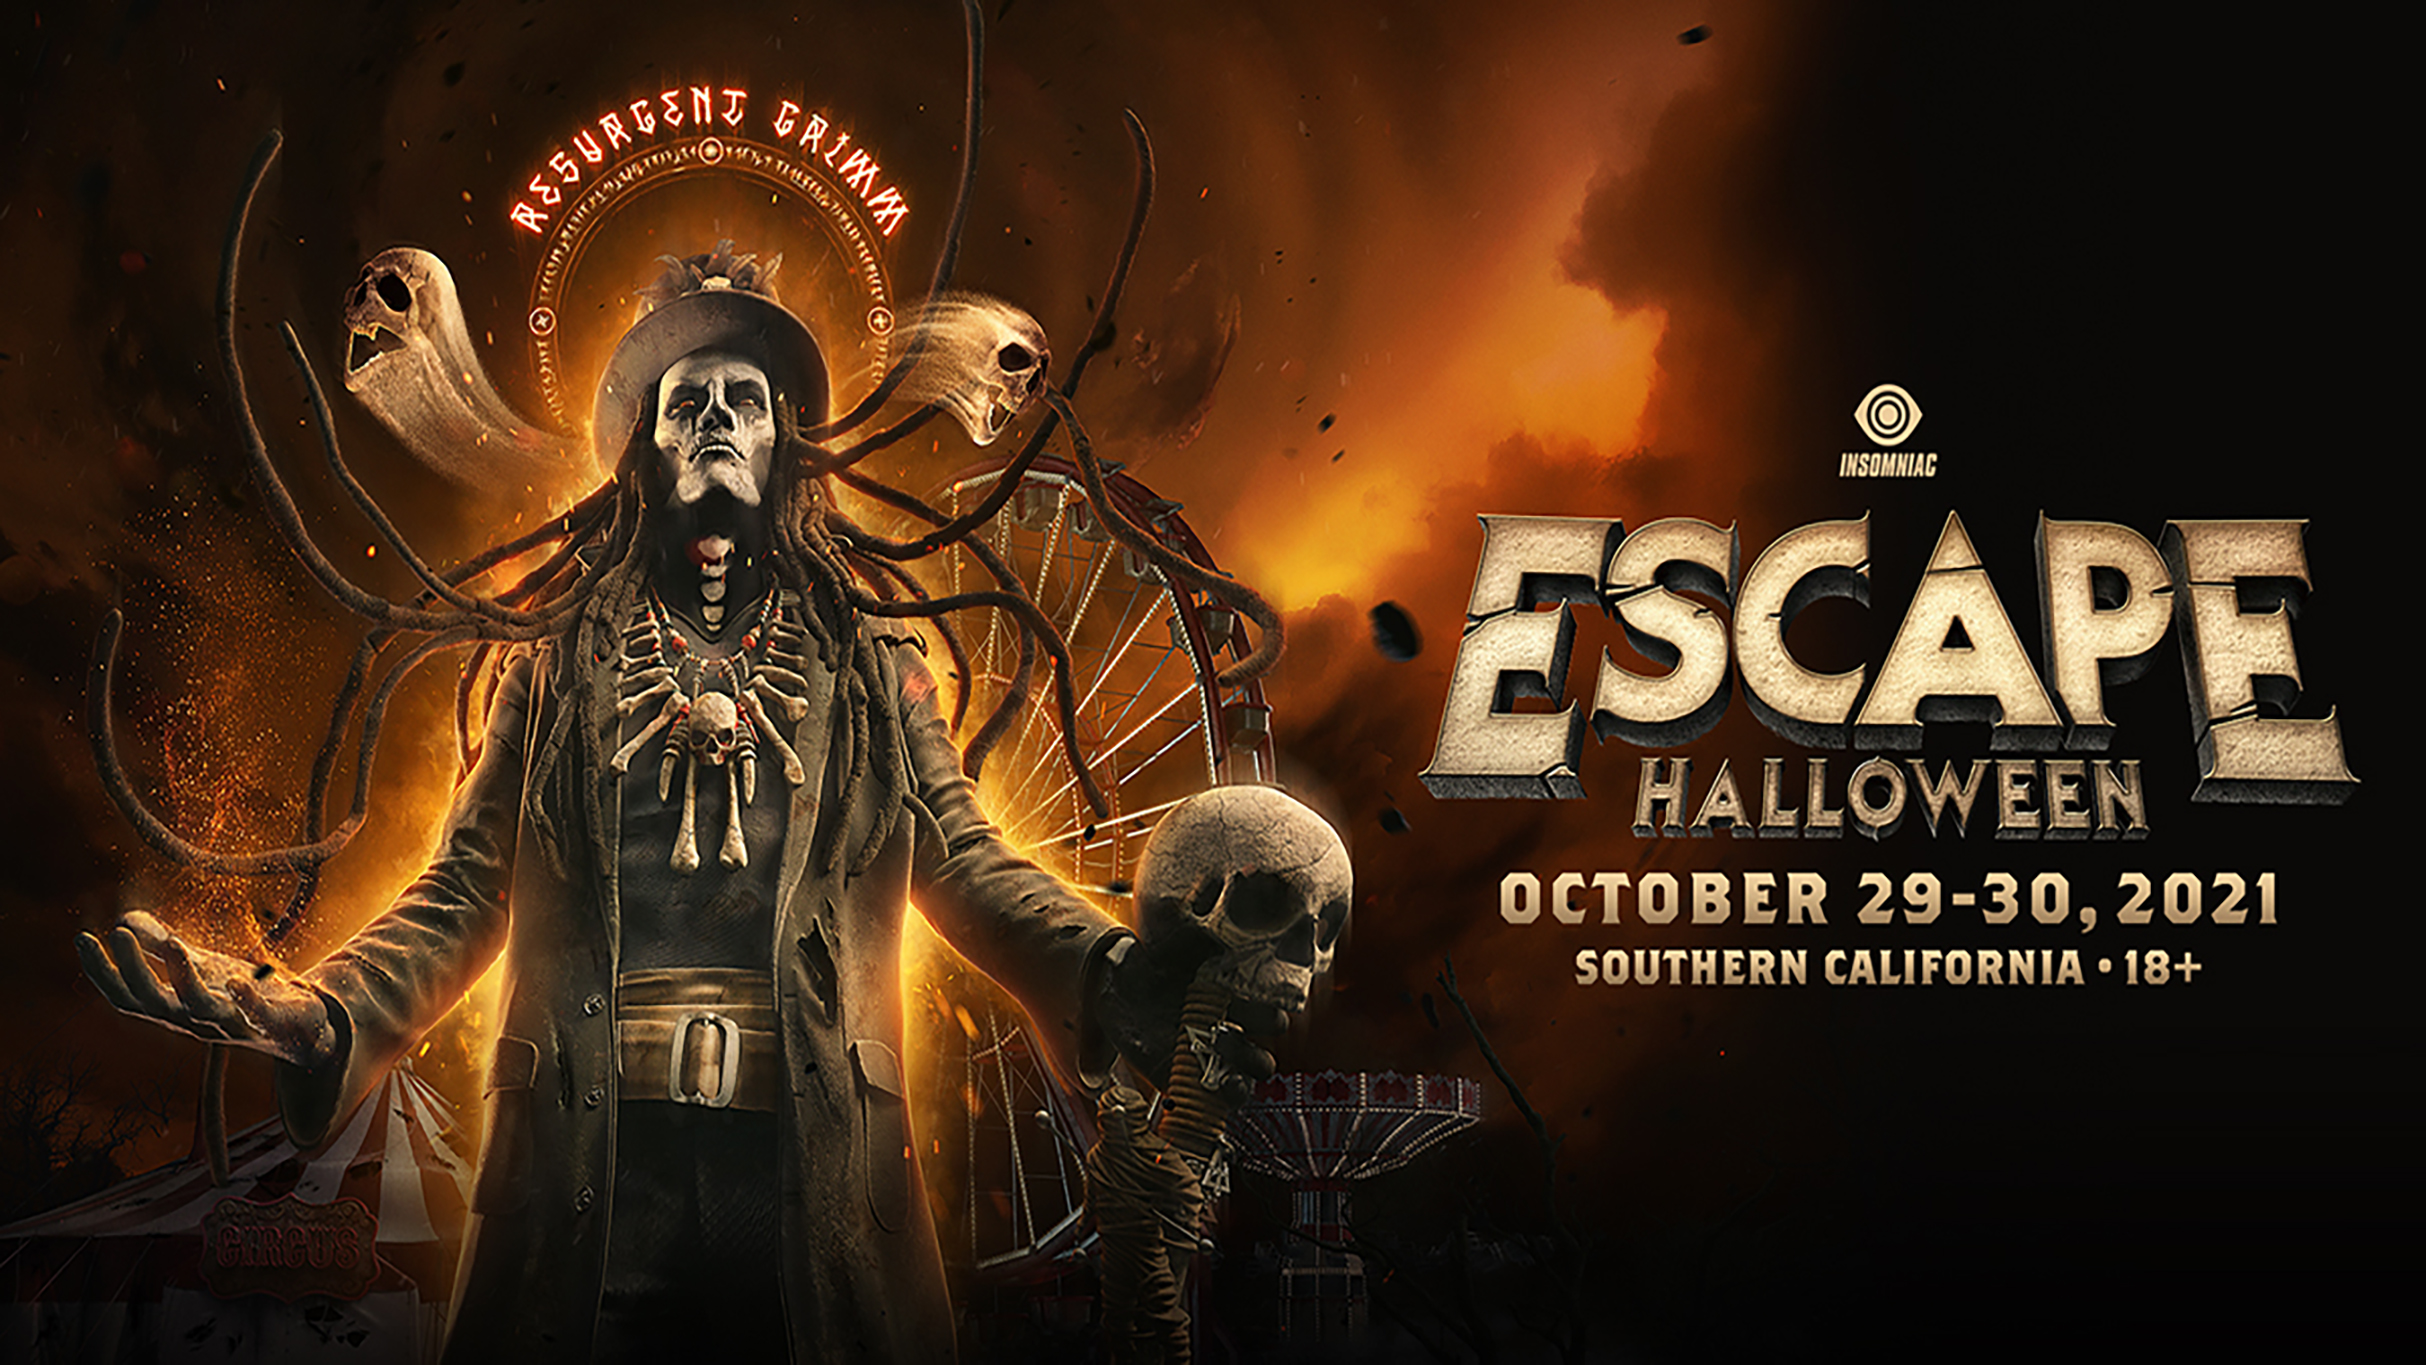 ESCAPE HALLOWEEN | OCTOBER 29-30, 2021 | TICKETS ON SALE NOW